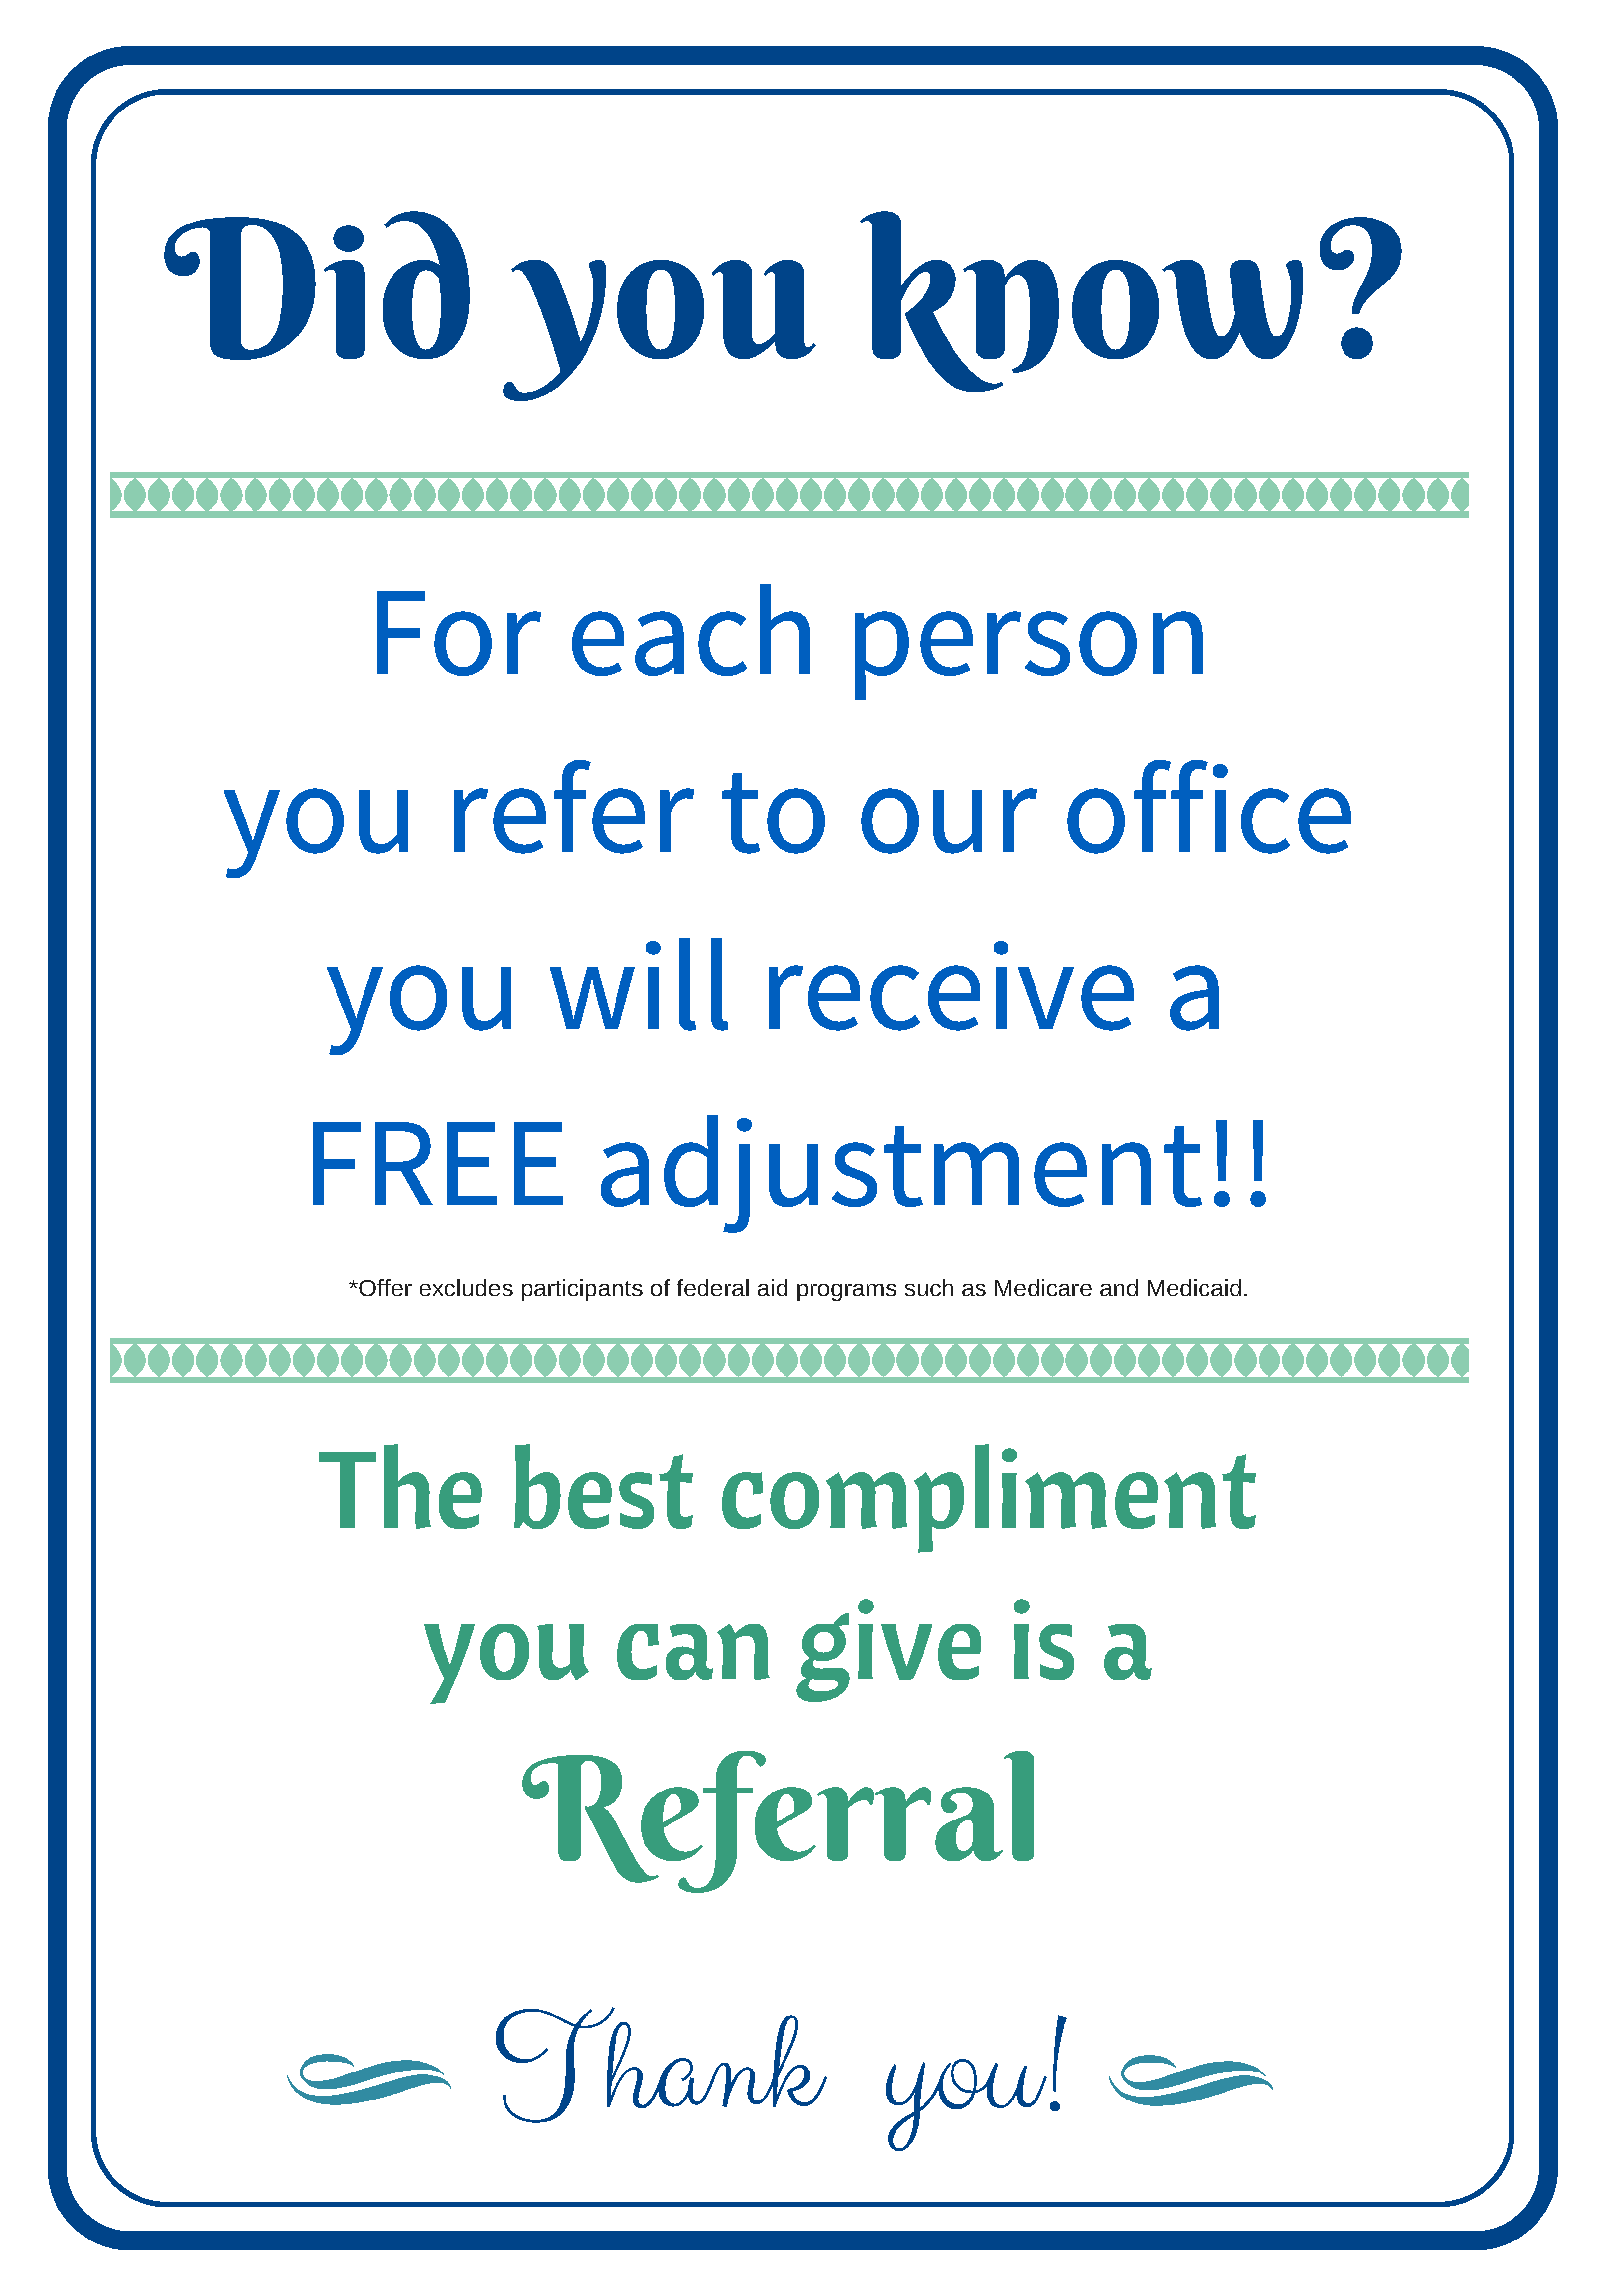 Referral sign